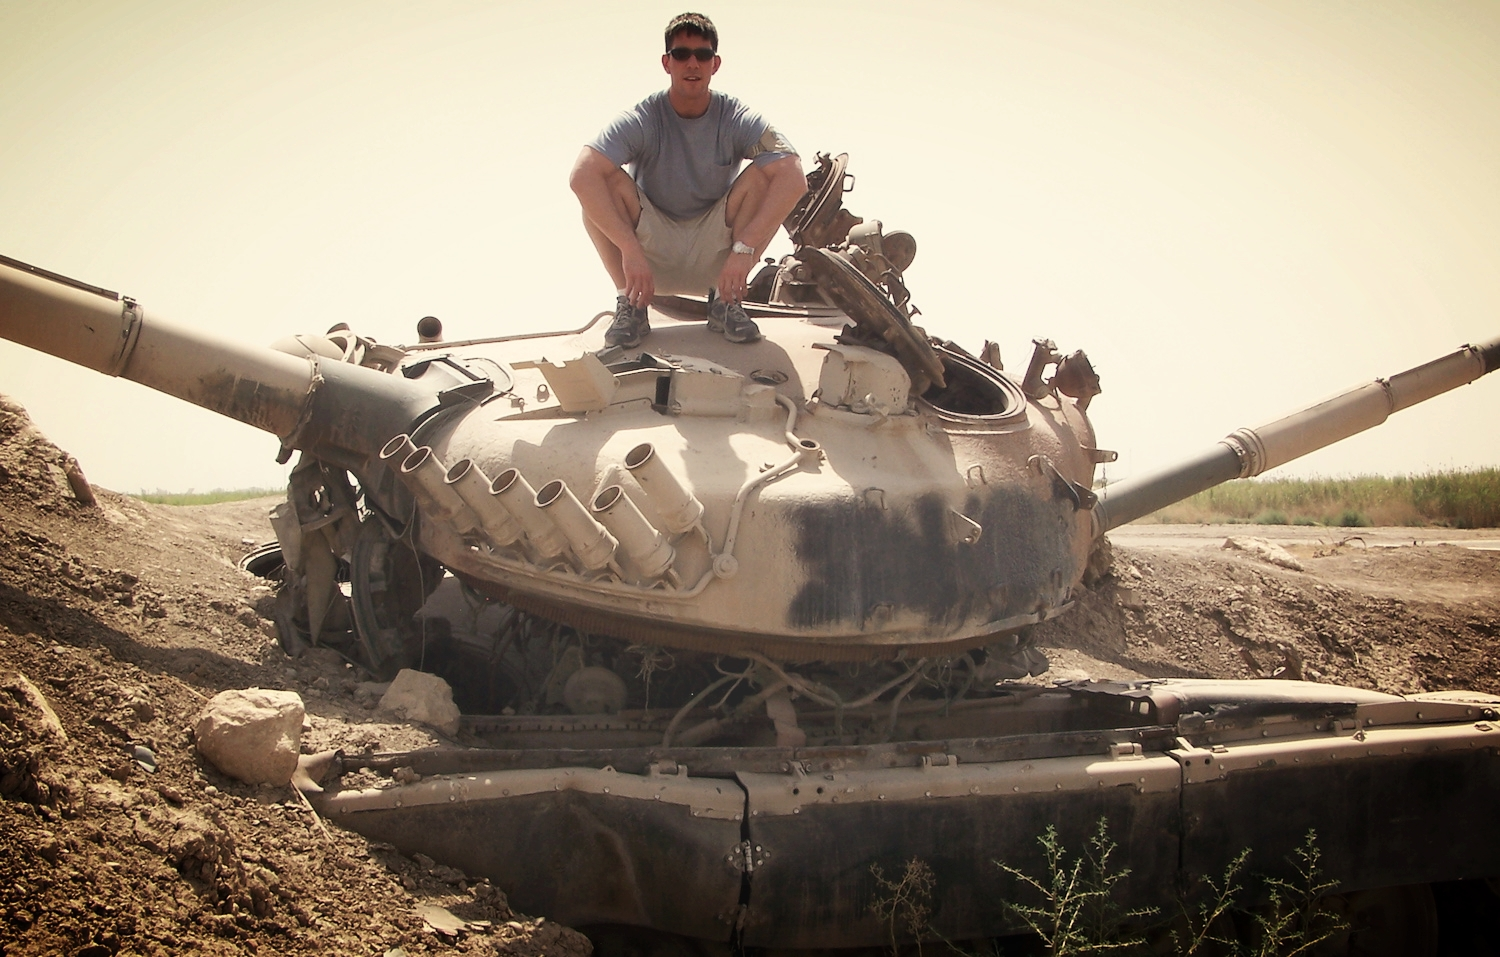 Tank Douche (Camp Slayer, Baghdad)